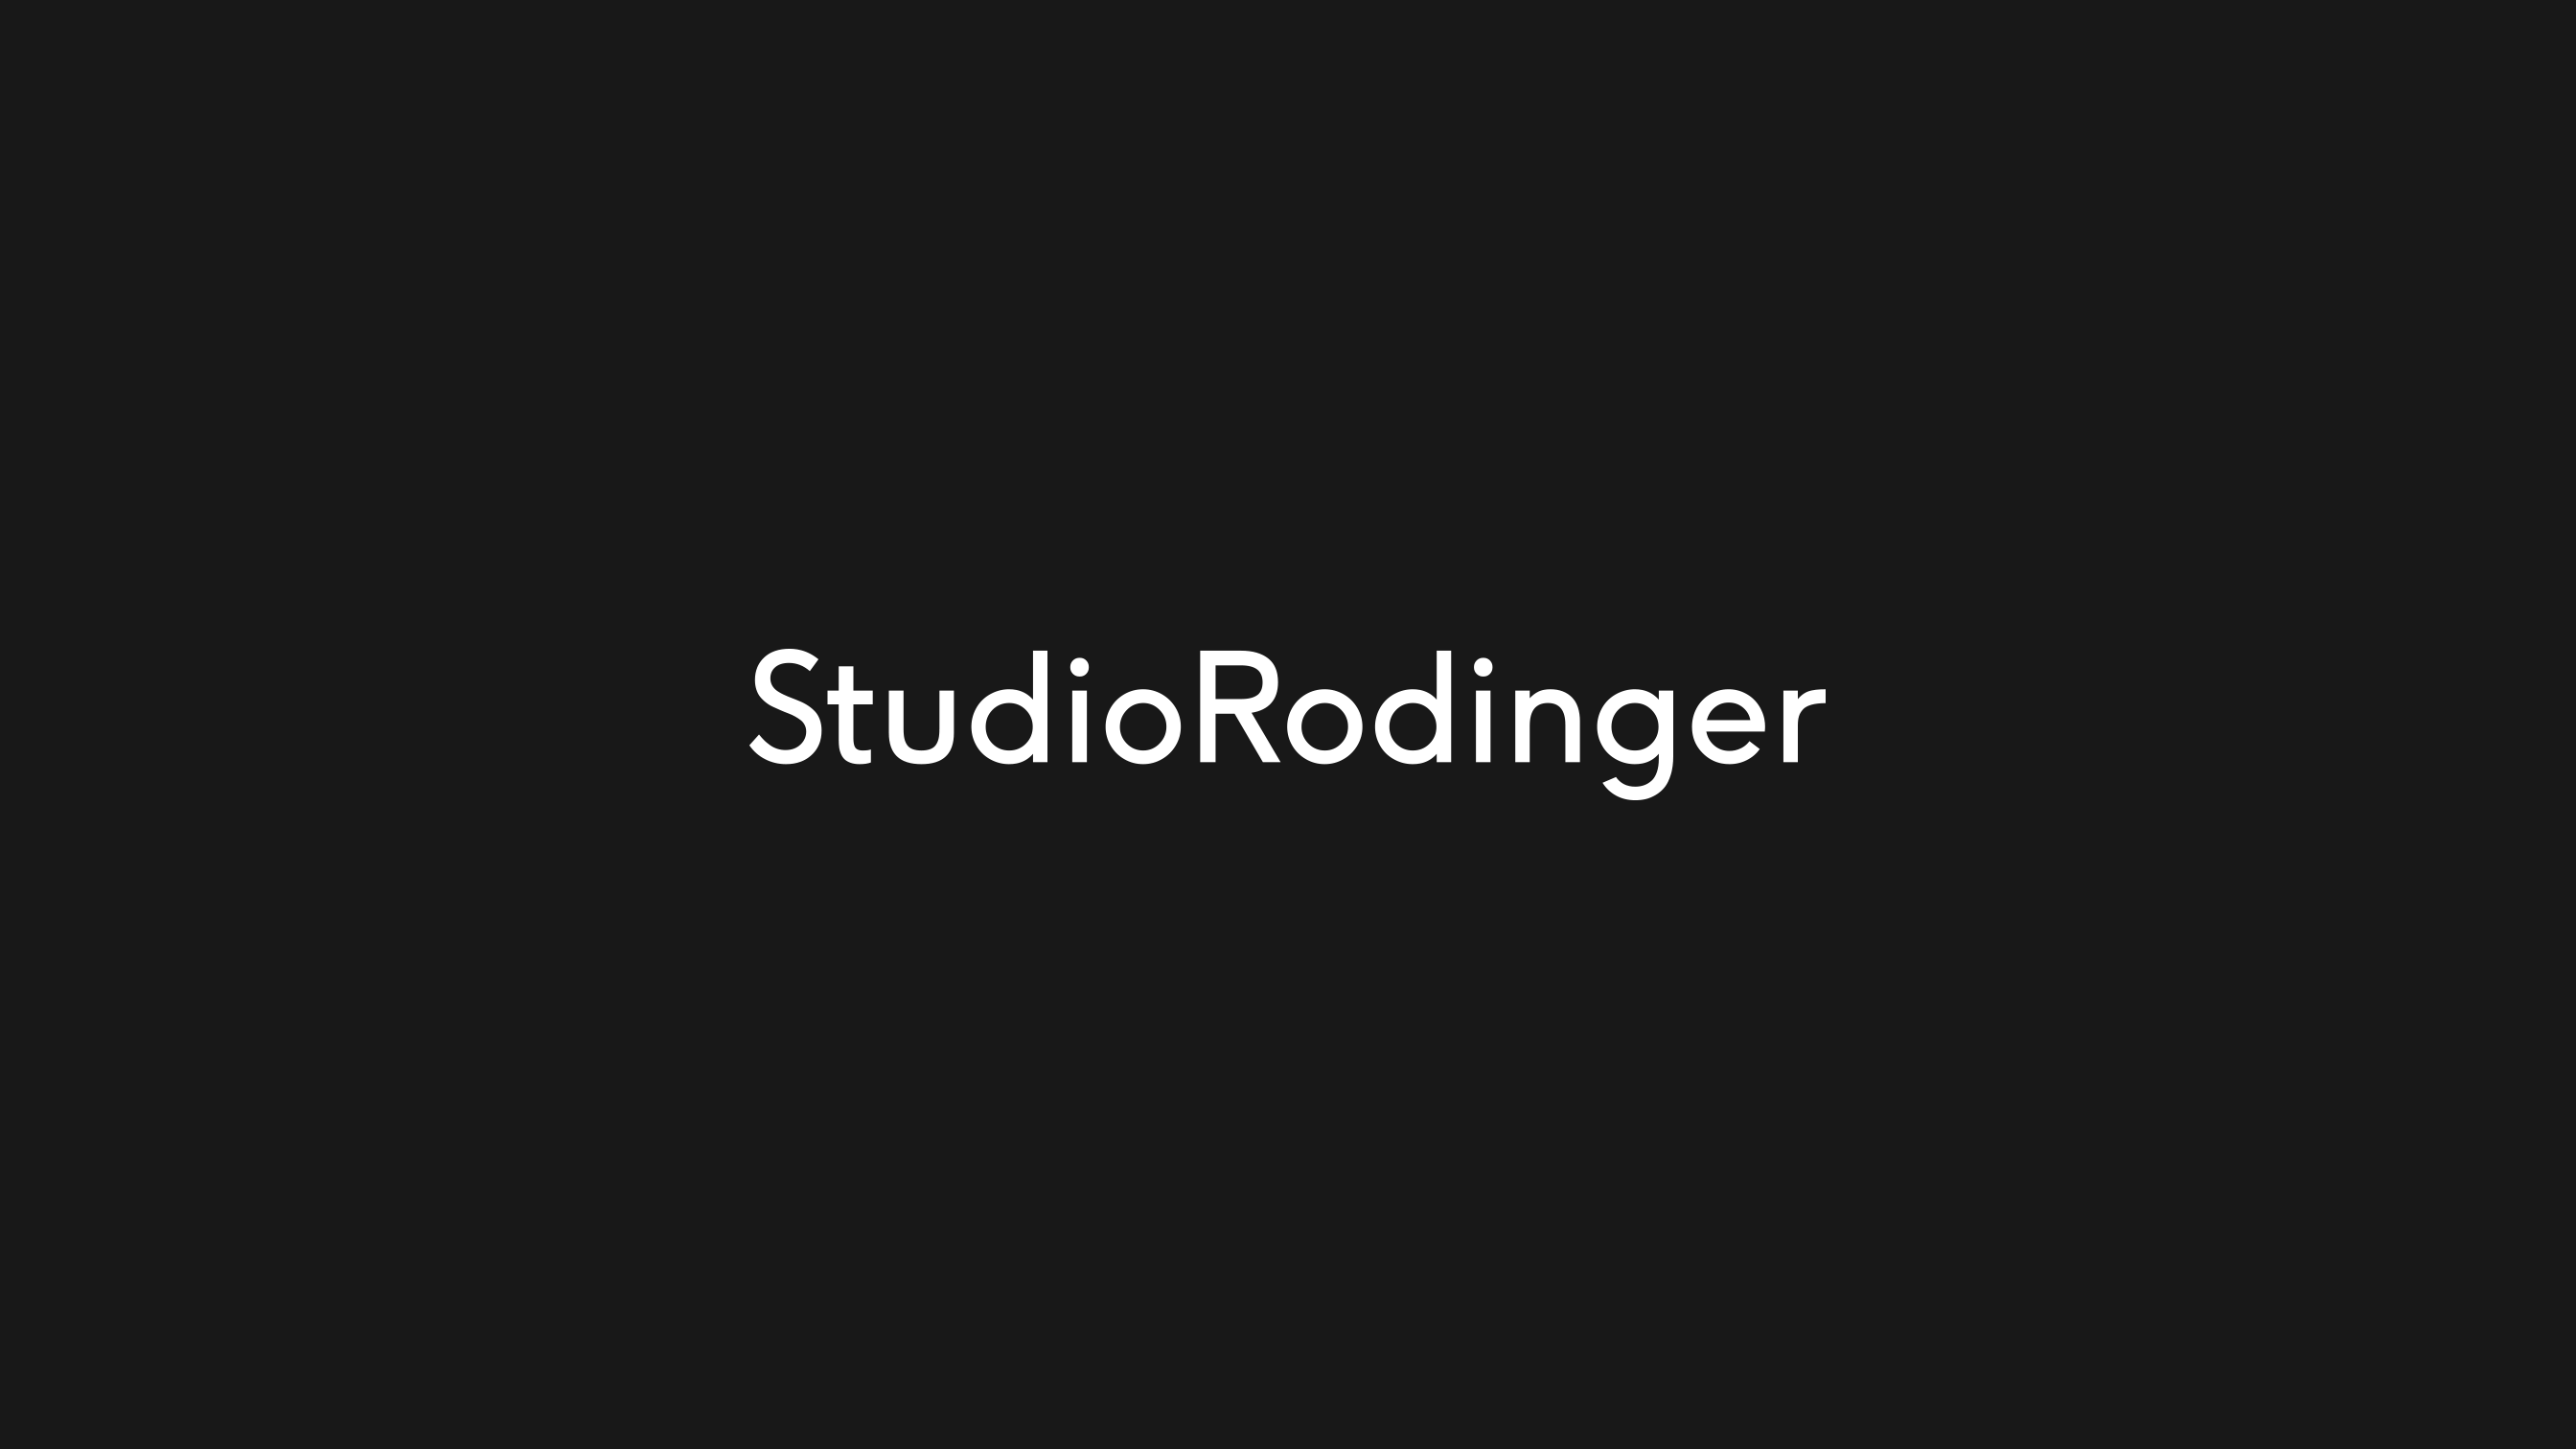 showcase-logotype-rodinger-02